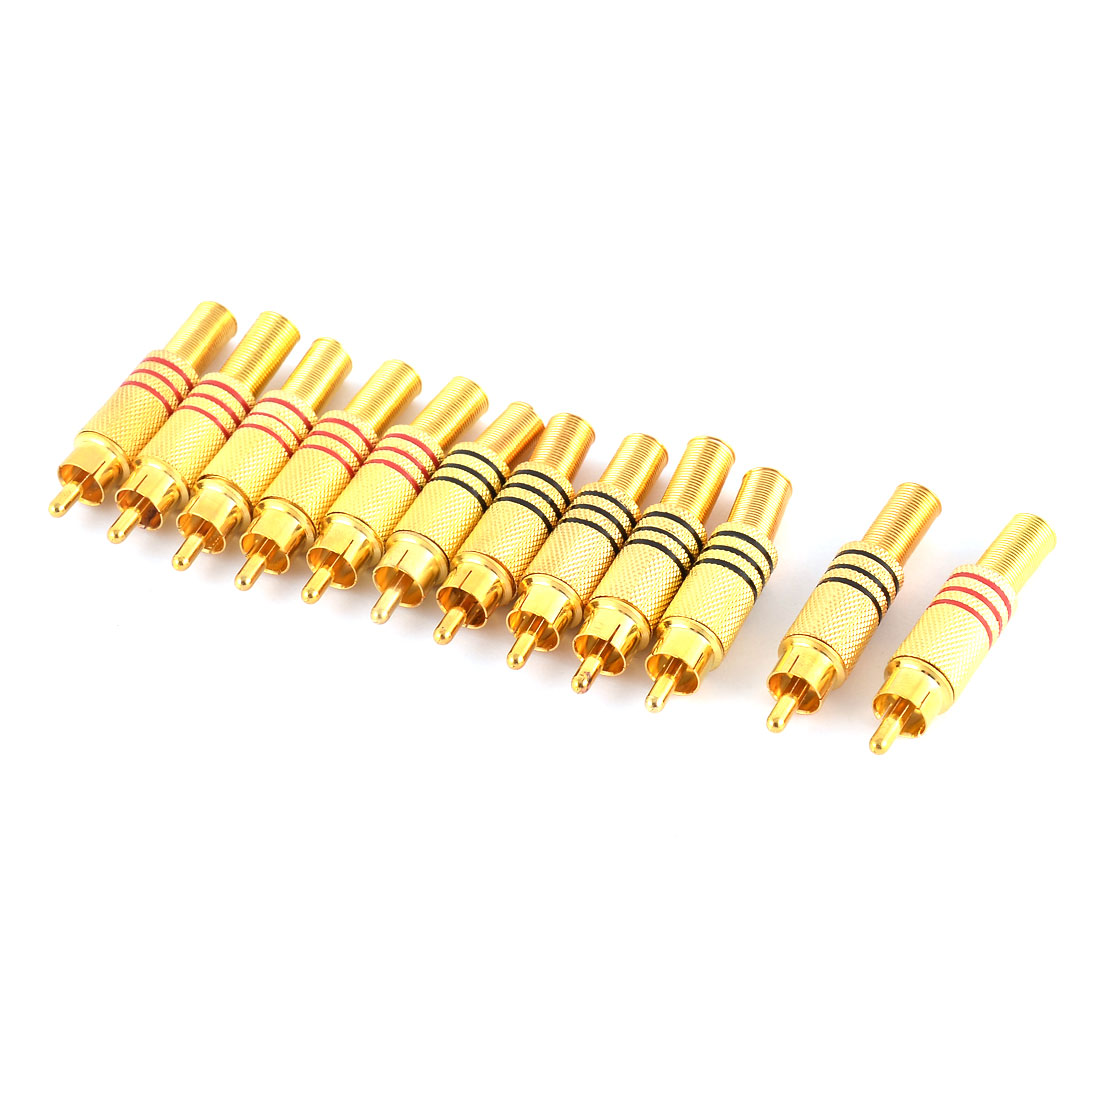 Metal Spring Male Audio Connectors Adapters RCA Gold Tone 12pcs